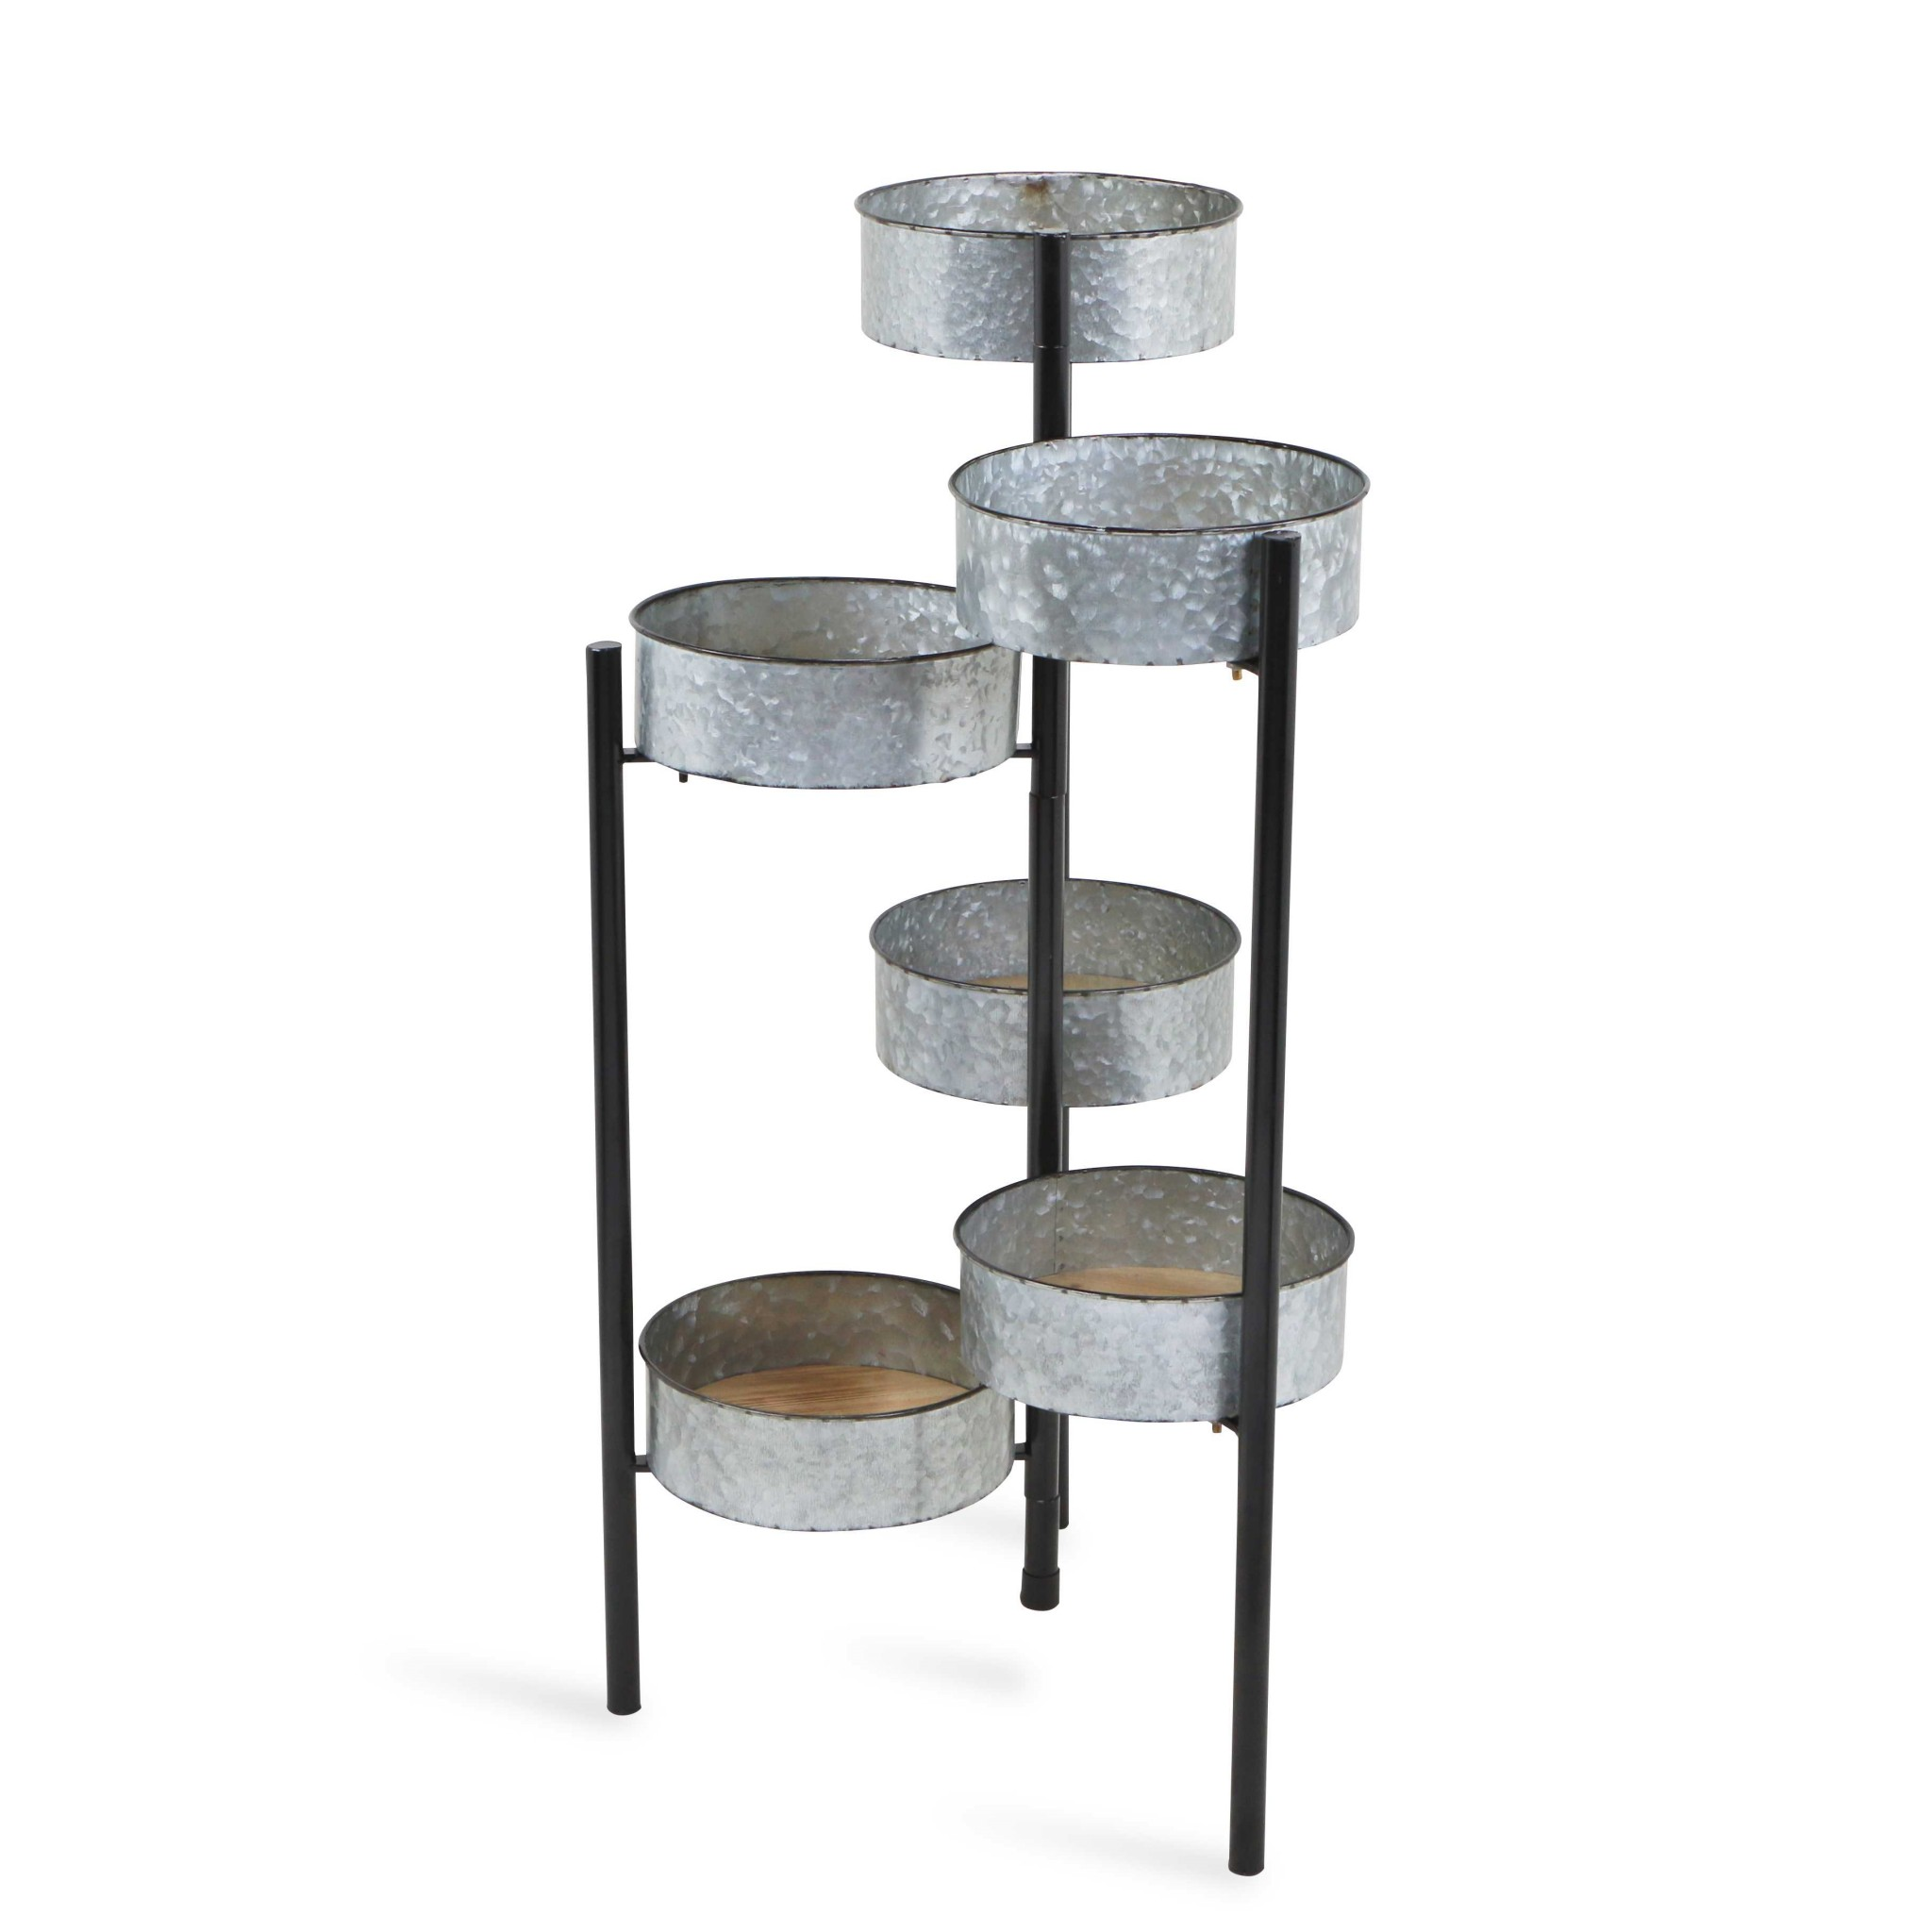 6 Metal Pot s and Wood Base Folding Plant Stand